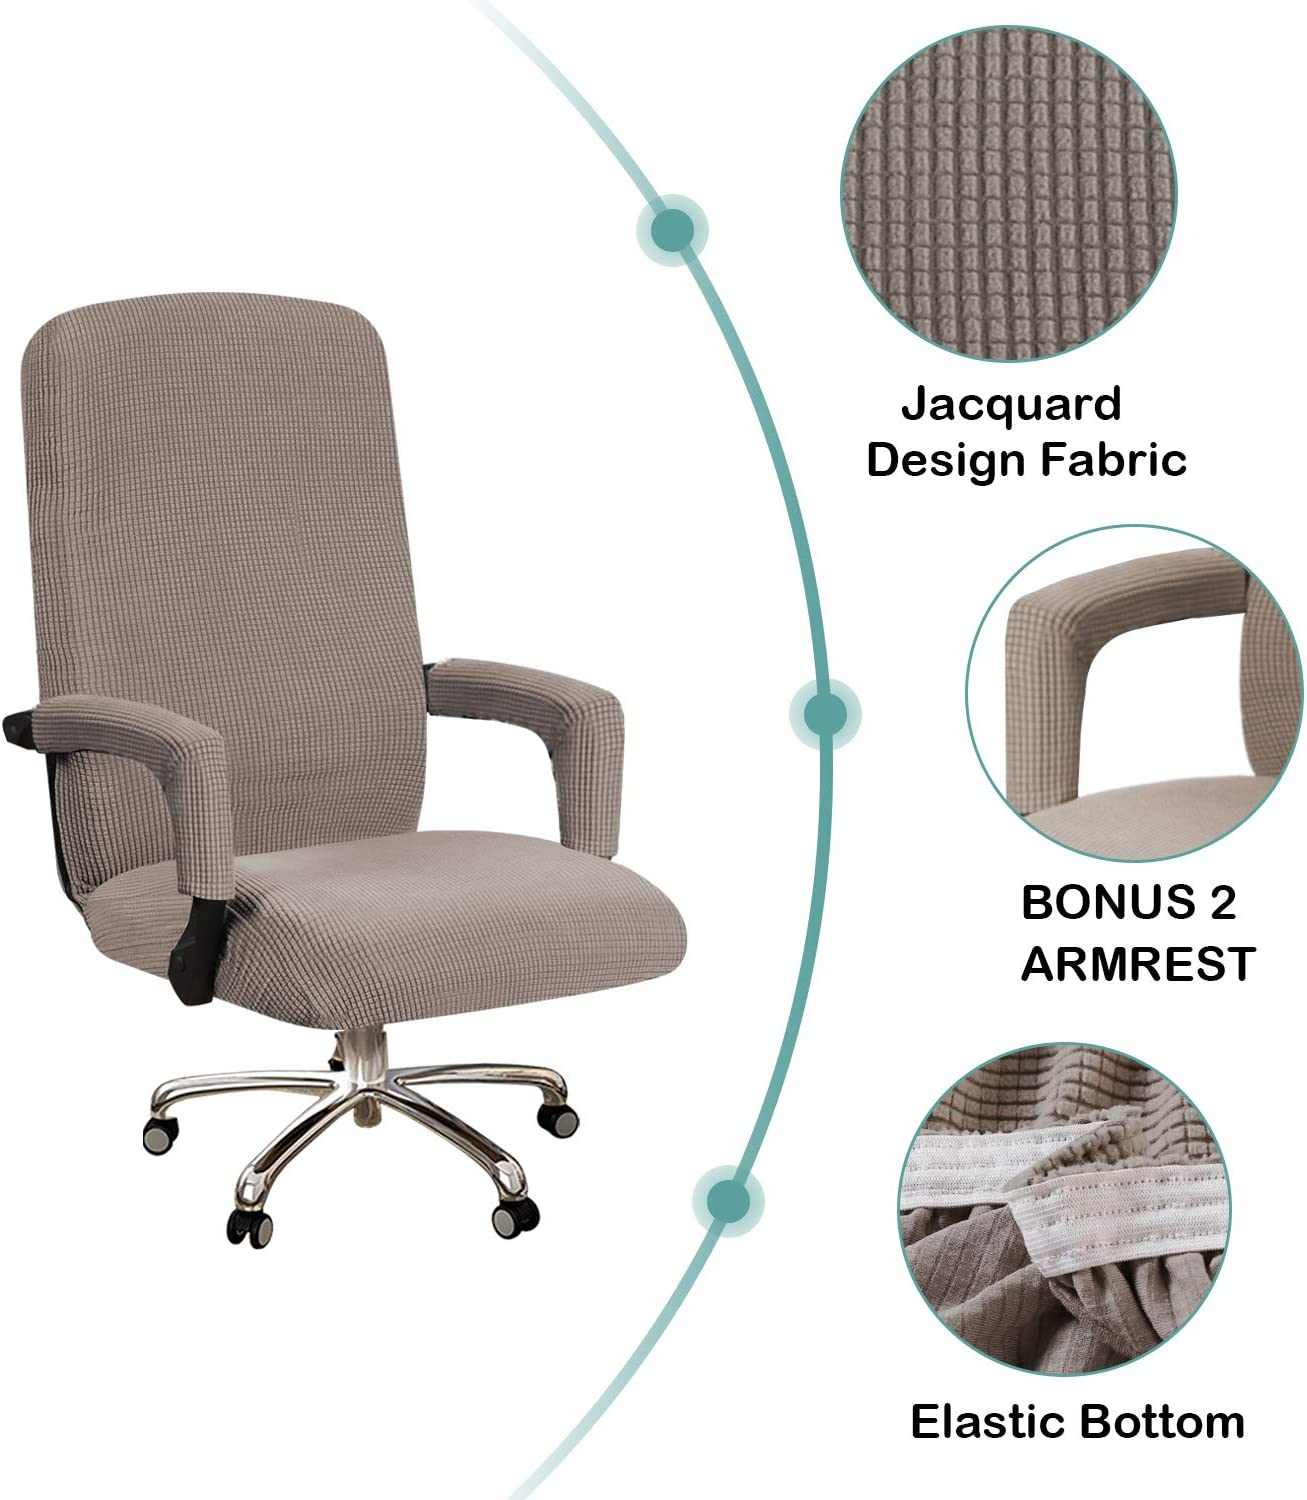 Large, Taupe BellaHills High Stretch Office Chair Cover Spandex Chair Cover for Office Chair Computer Office Chair Covers High Back Feature Checked Jacquard Fabric Modern Simplism Style